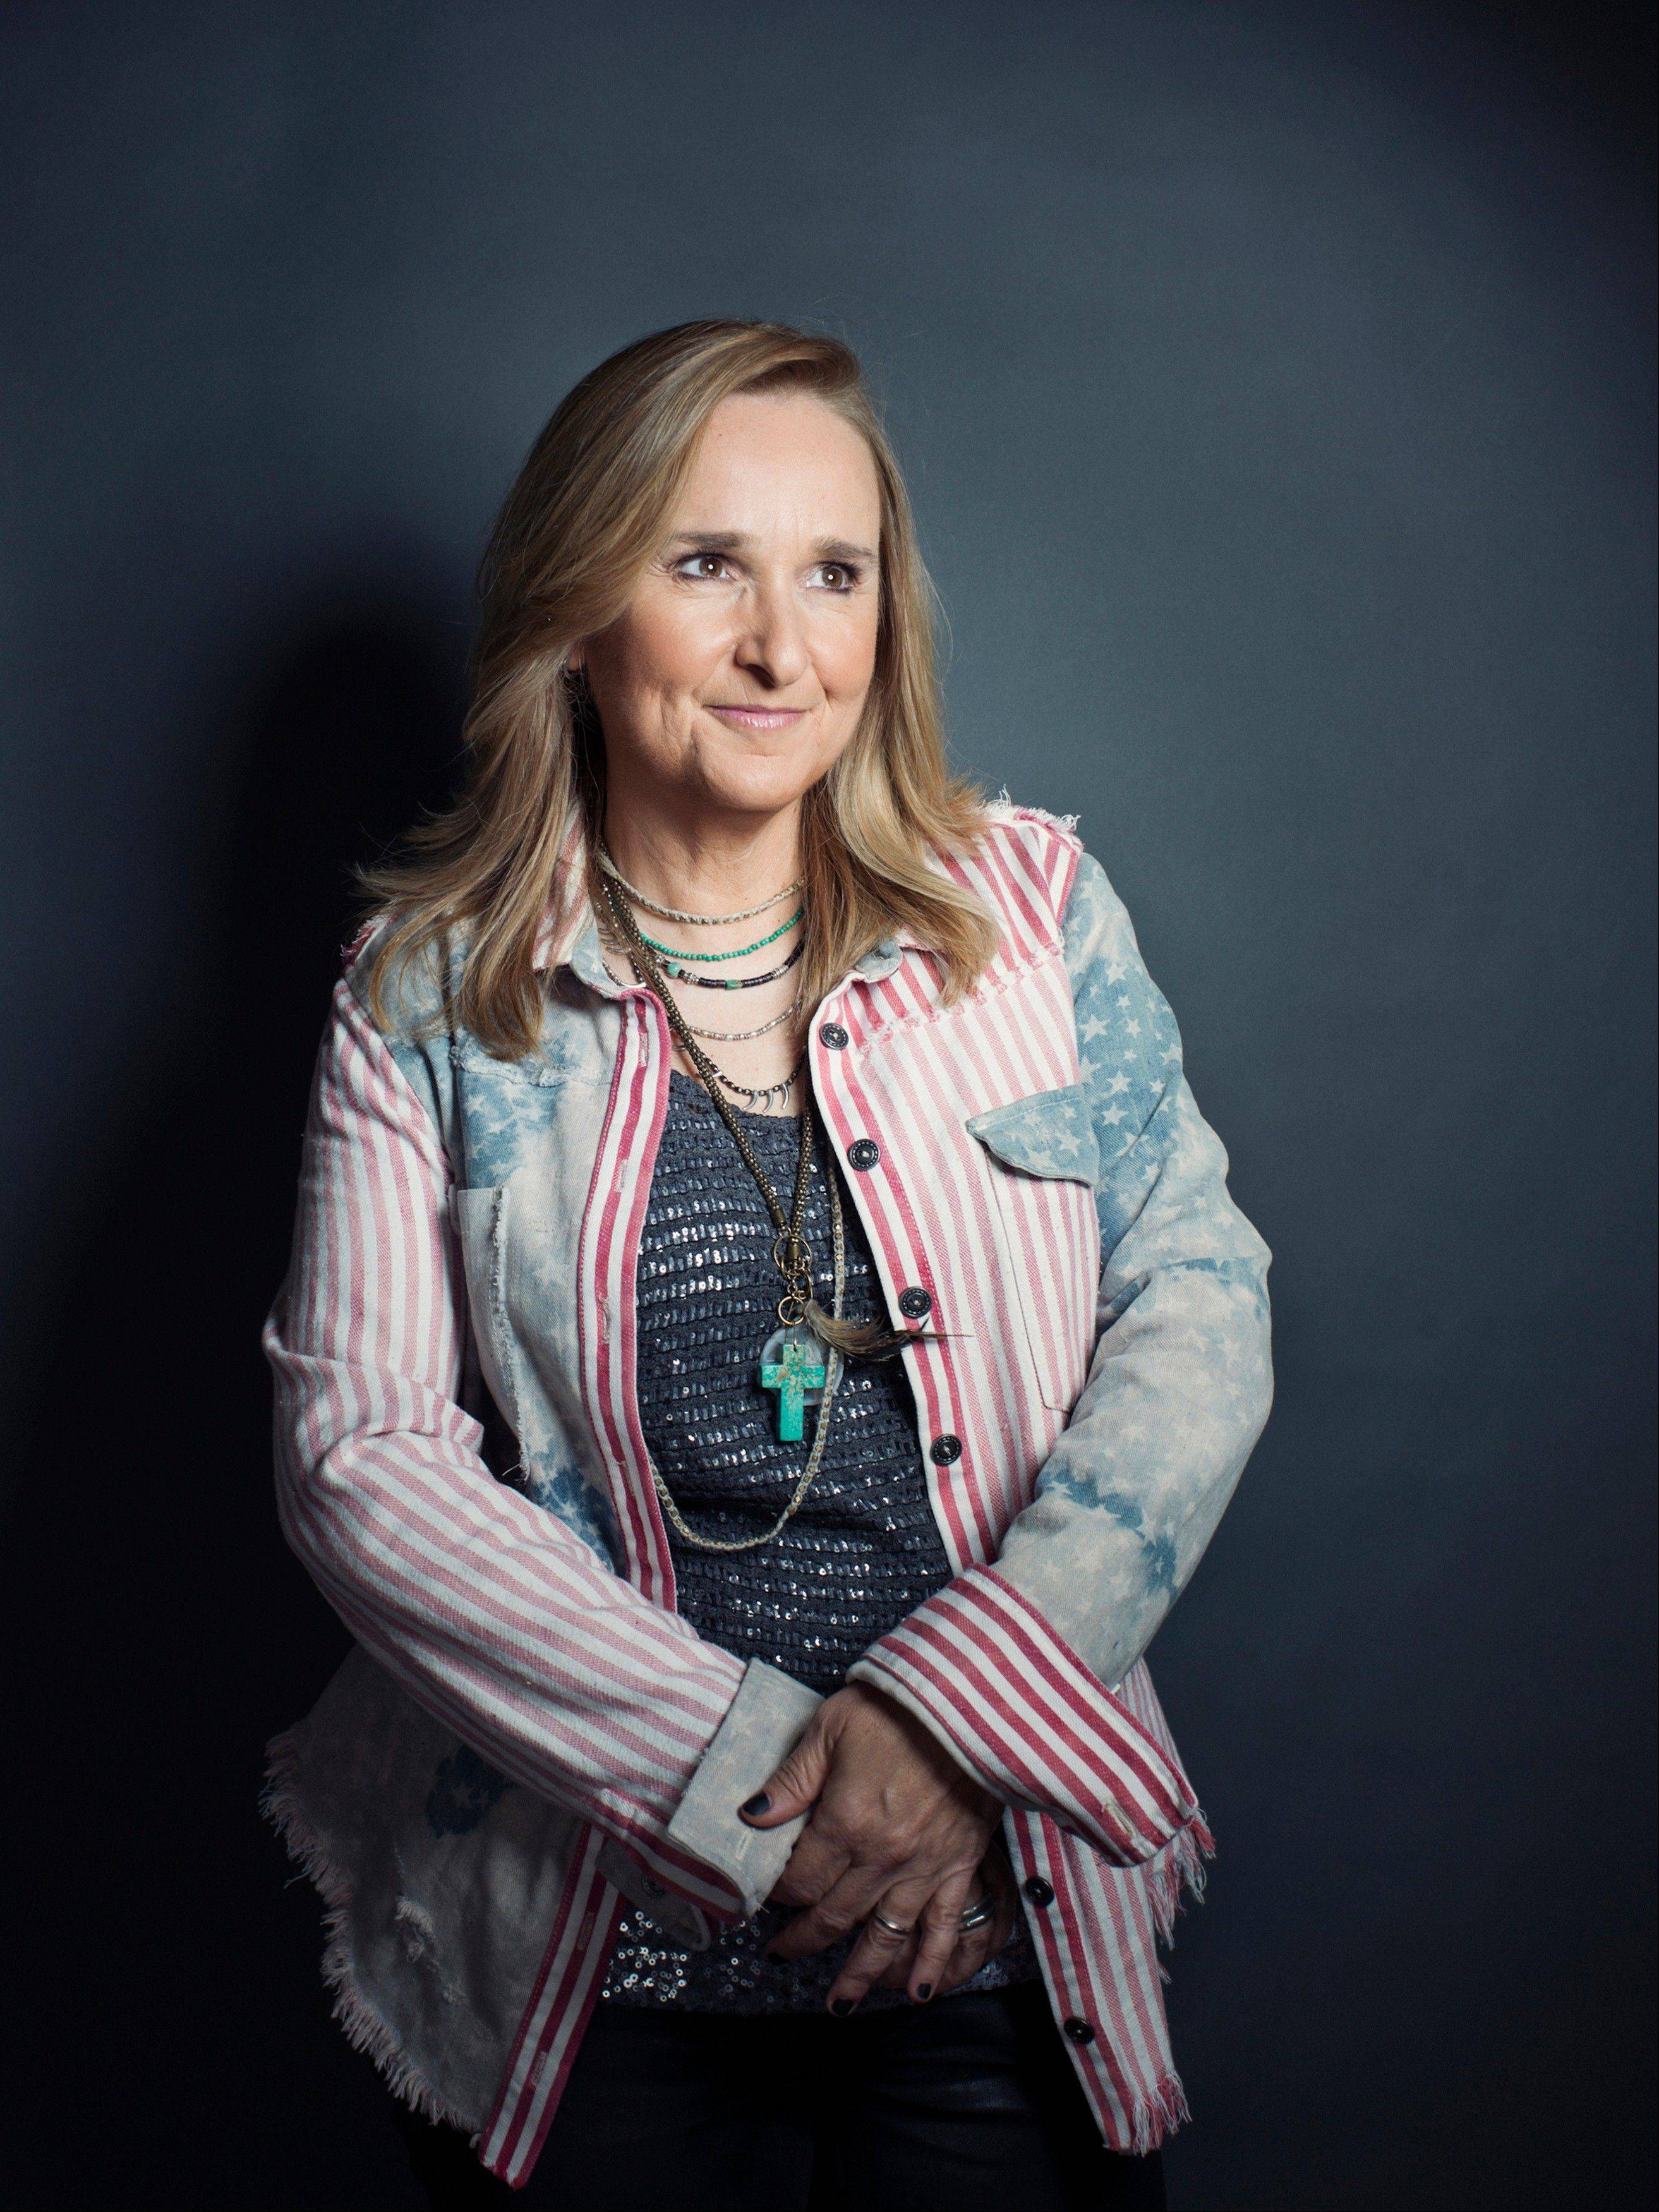 Photo by Victoria Will/Invision/APAmerican singer-songwriter Melissa Etheridge is set to perform at the Chicago Theatre on Saturday, Nov. 10, with her 4th Street Feeling Tour.